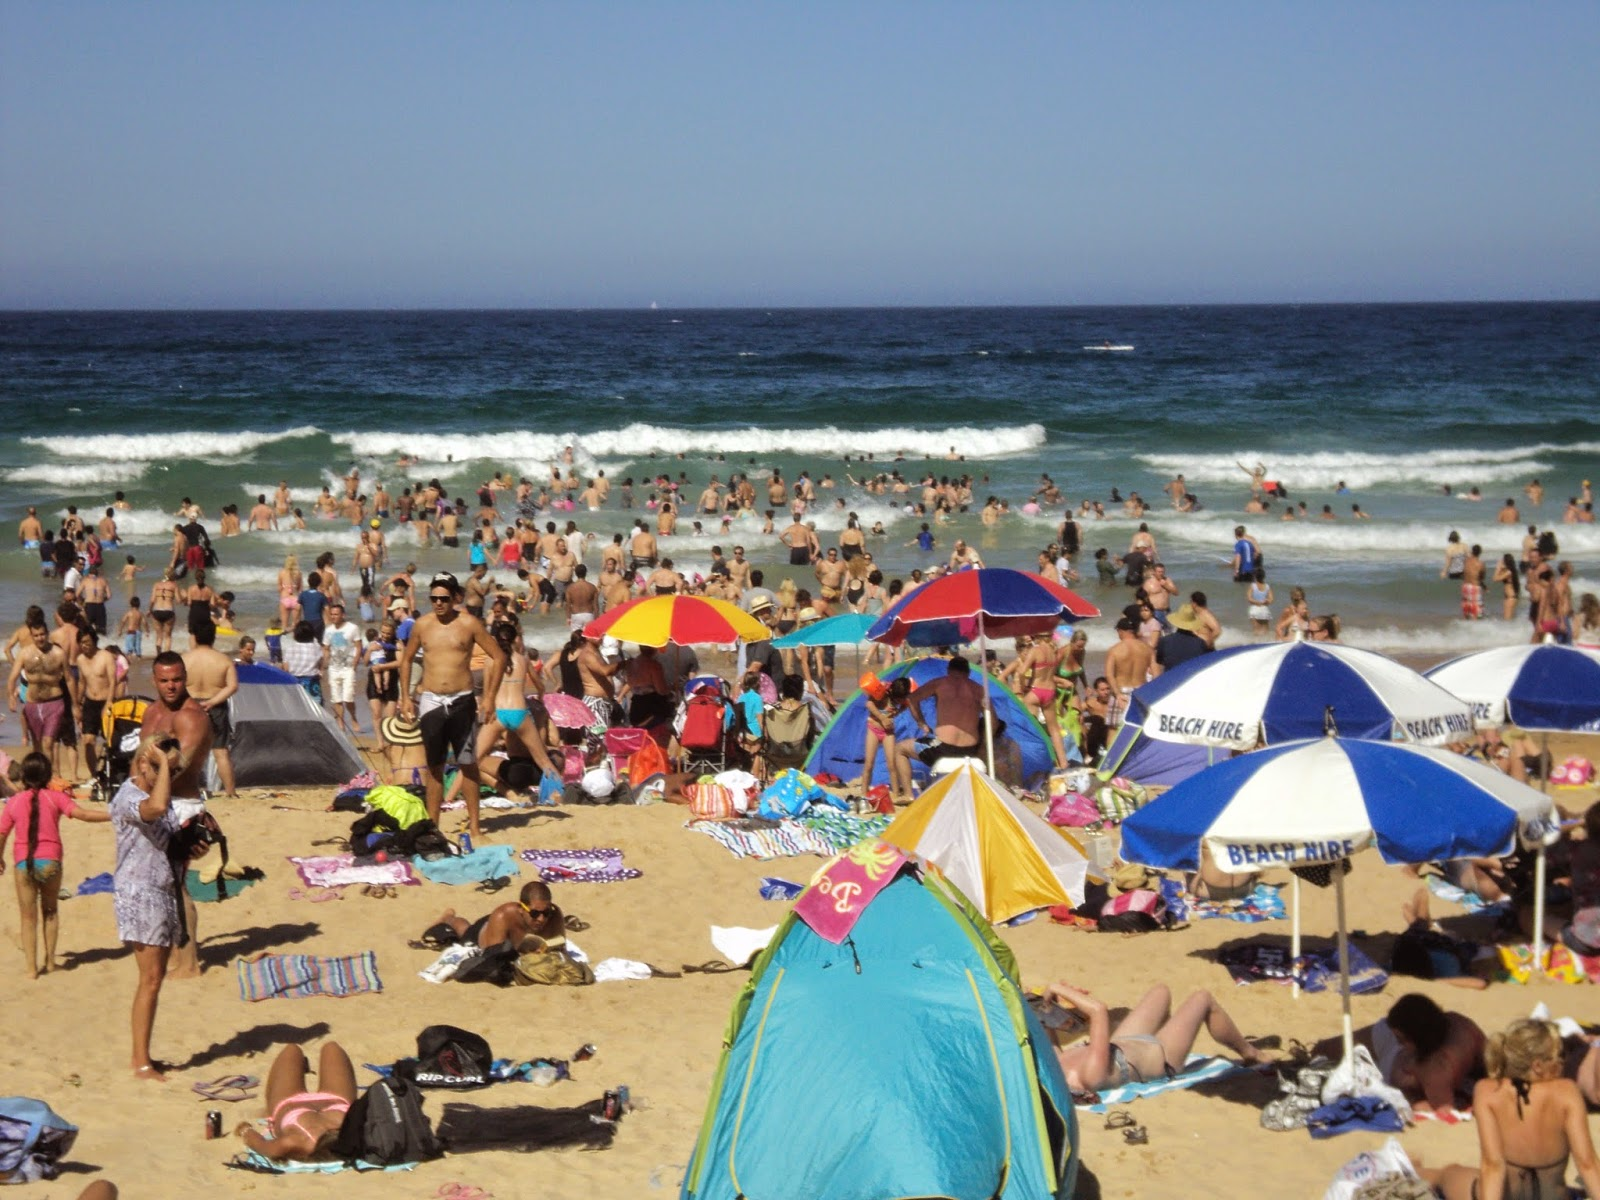 Manly Beach, Sydney, New South Wales (NSW), Australia - photo by Katie @ Second-Hand Hedgehog travel blog